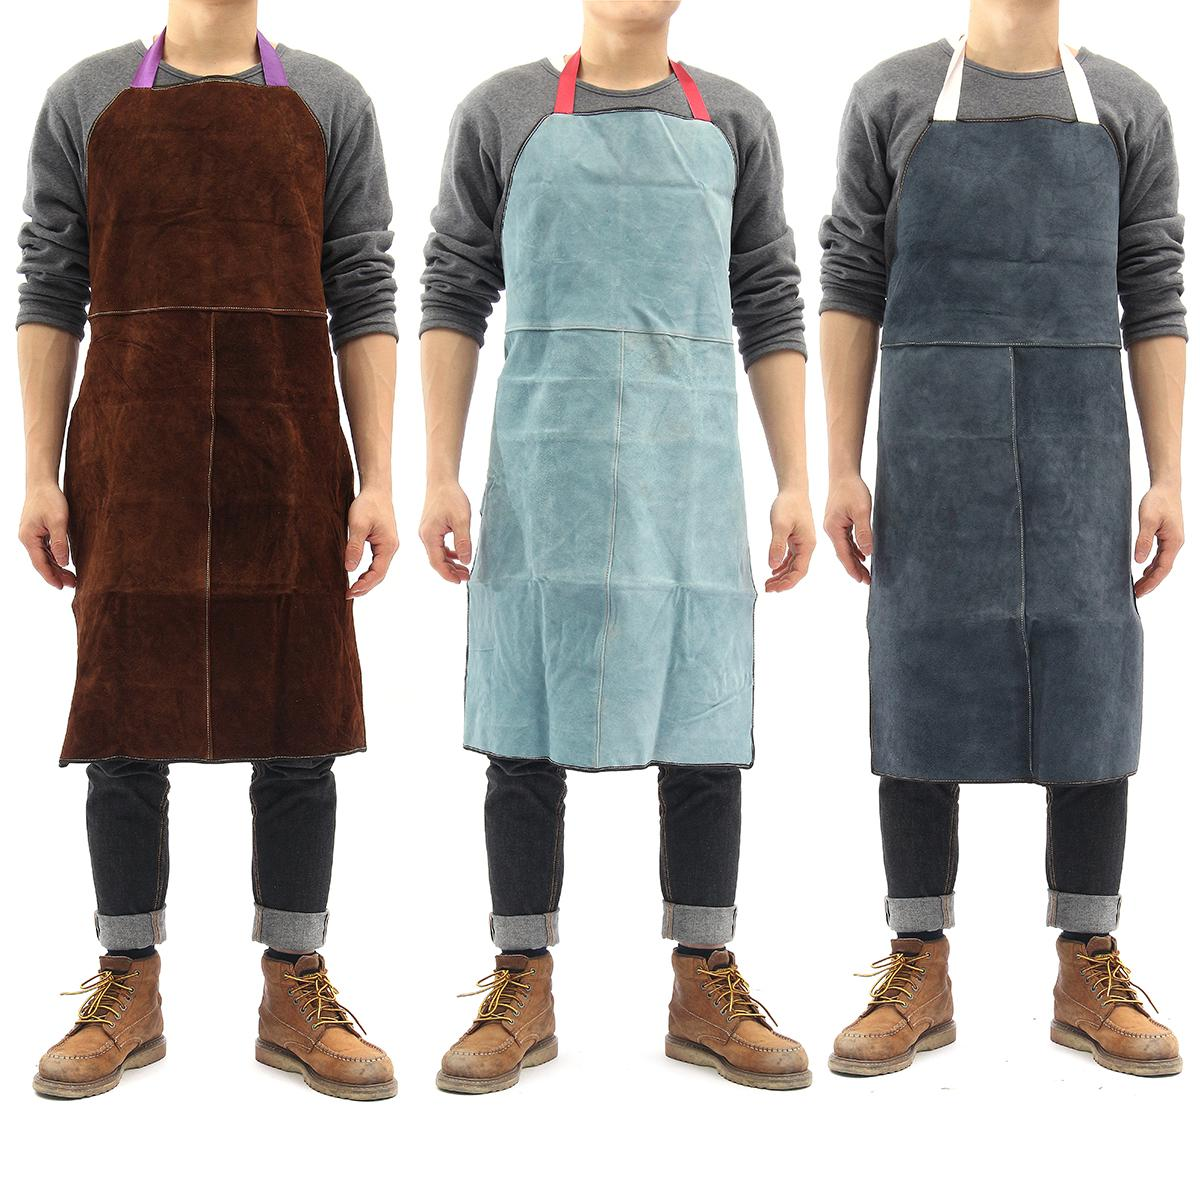 Safurance Welding Equipment Welder Heat Insulation Protection Cow Leather Apron 60x90cm  Workplace Safety